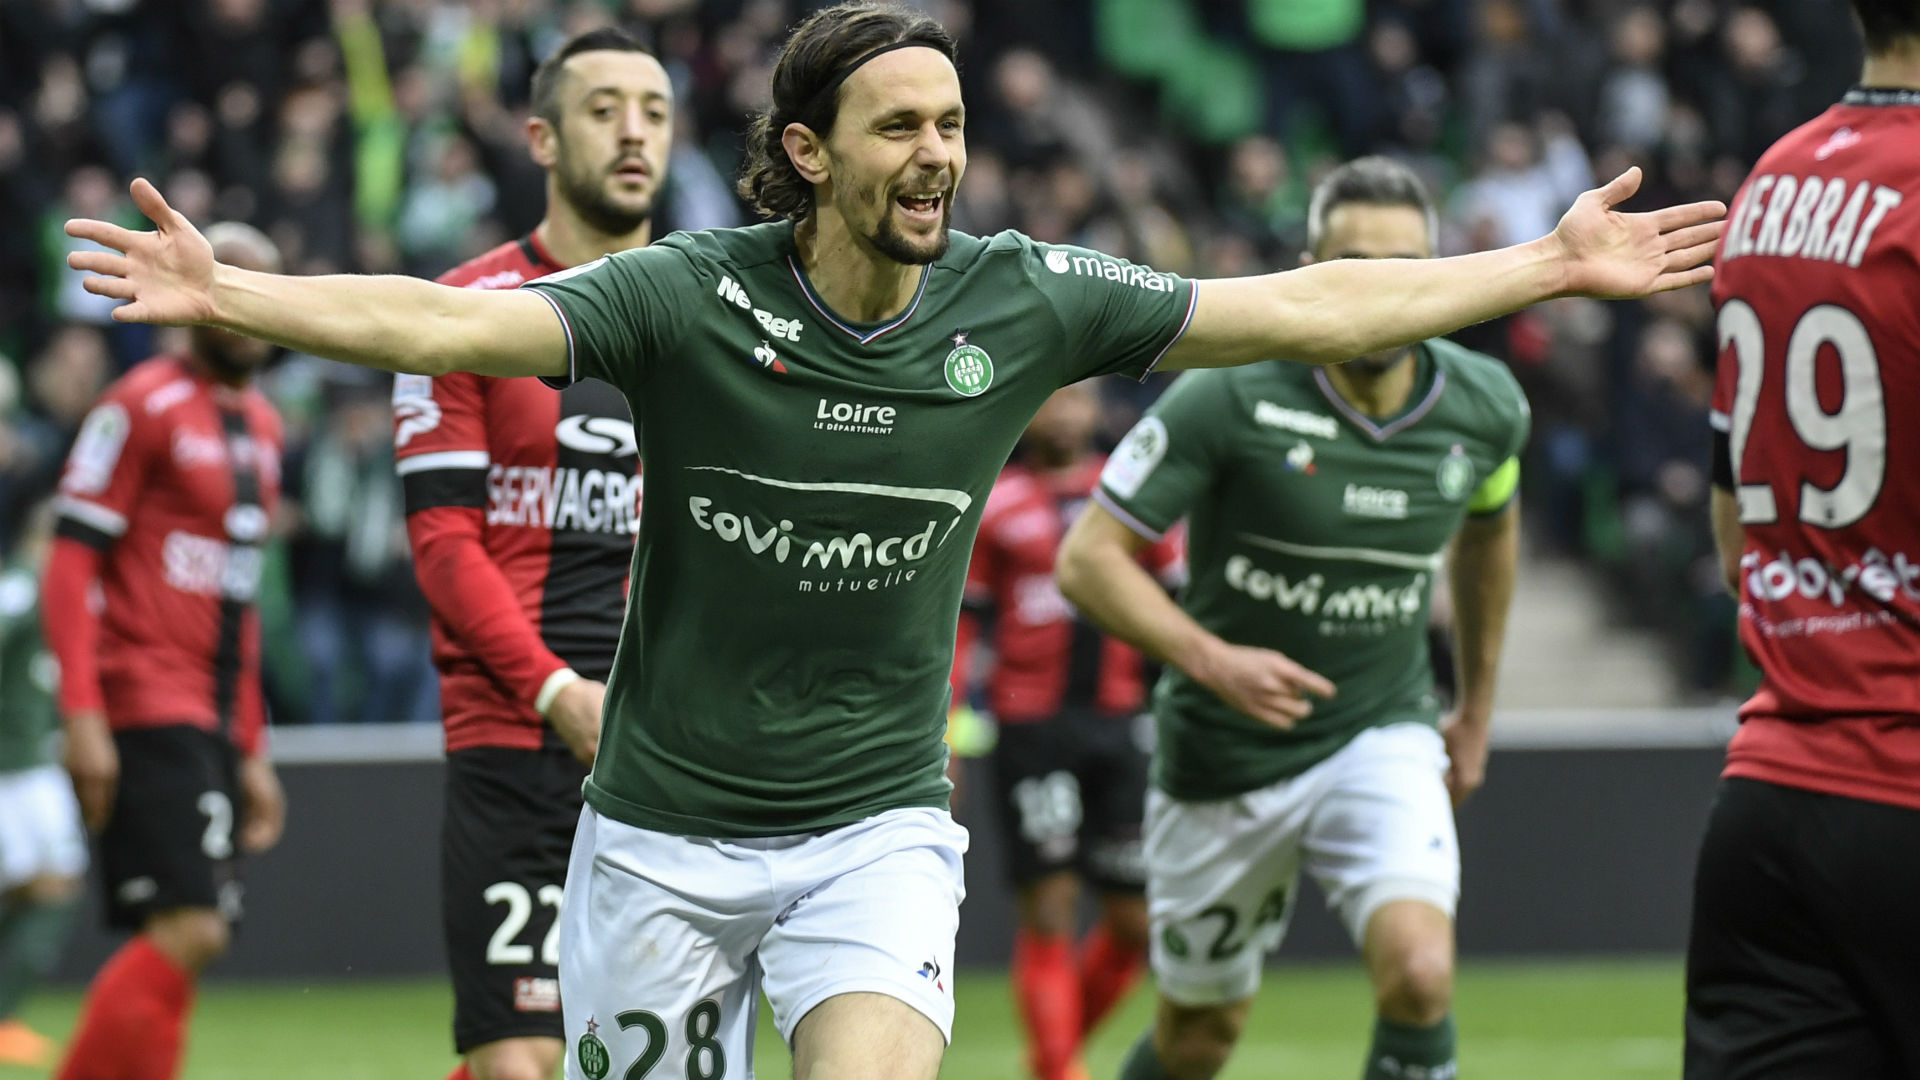 Maillot Domicile saint etienne Neven SUBOTIC